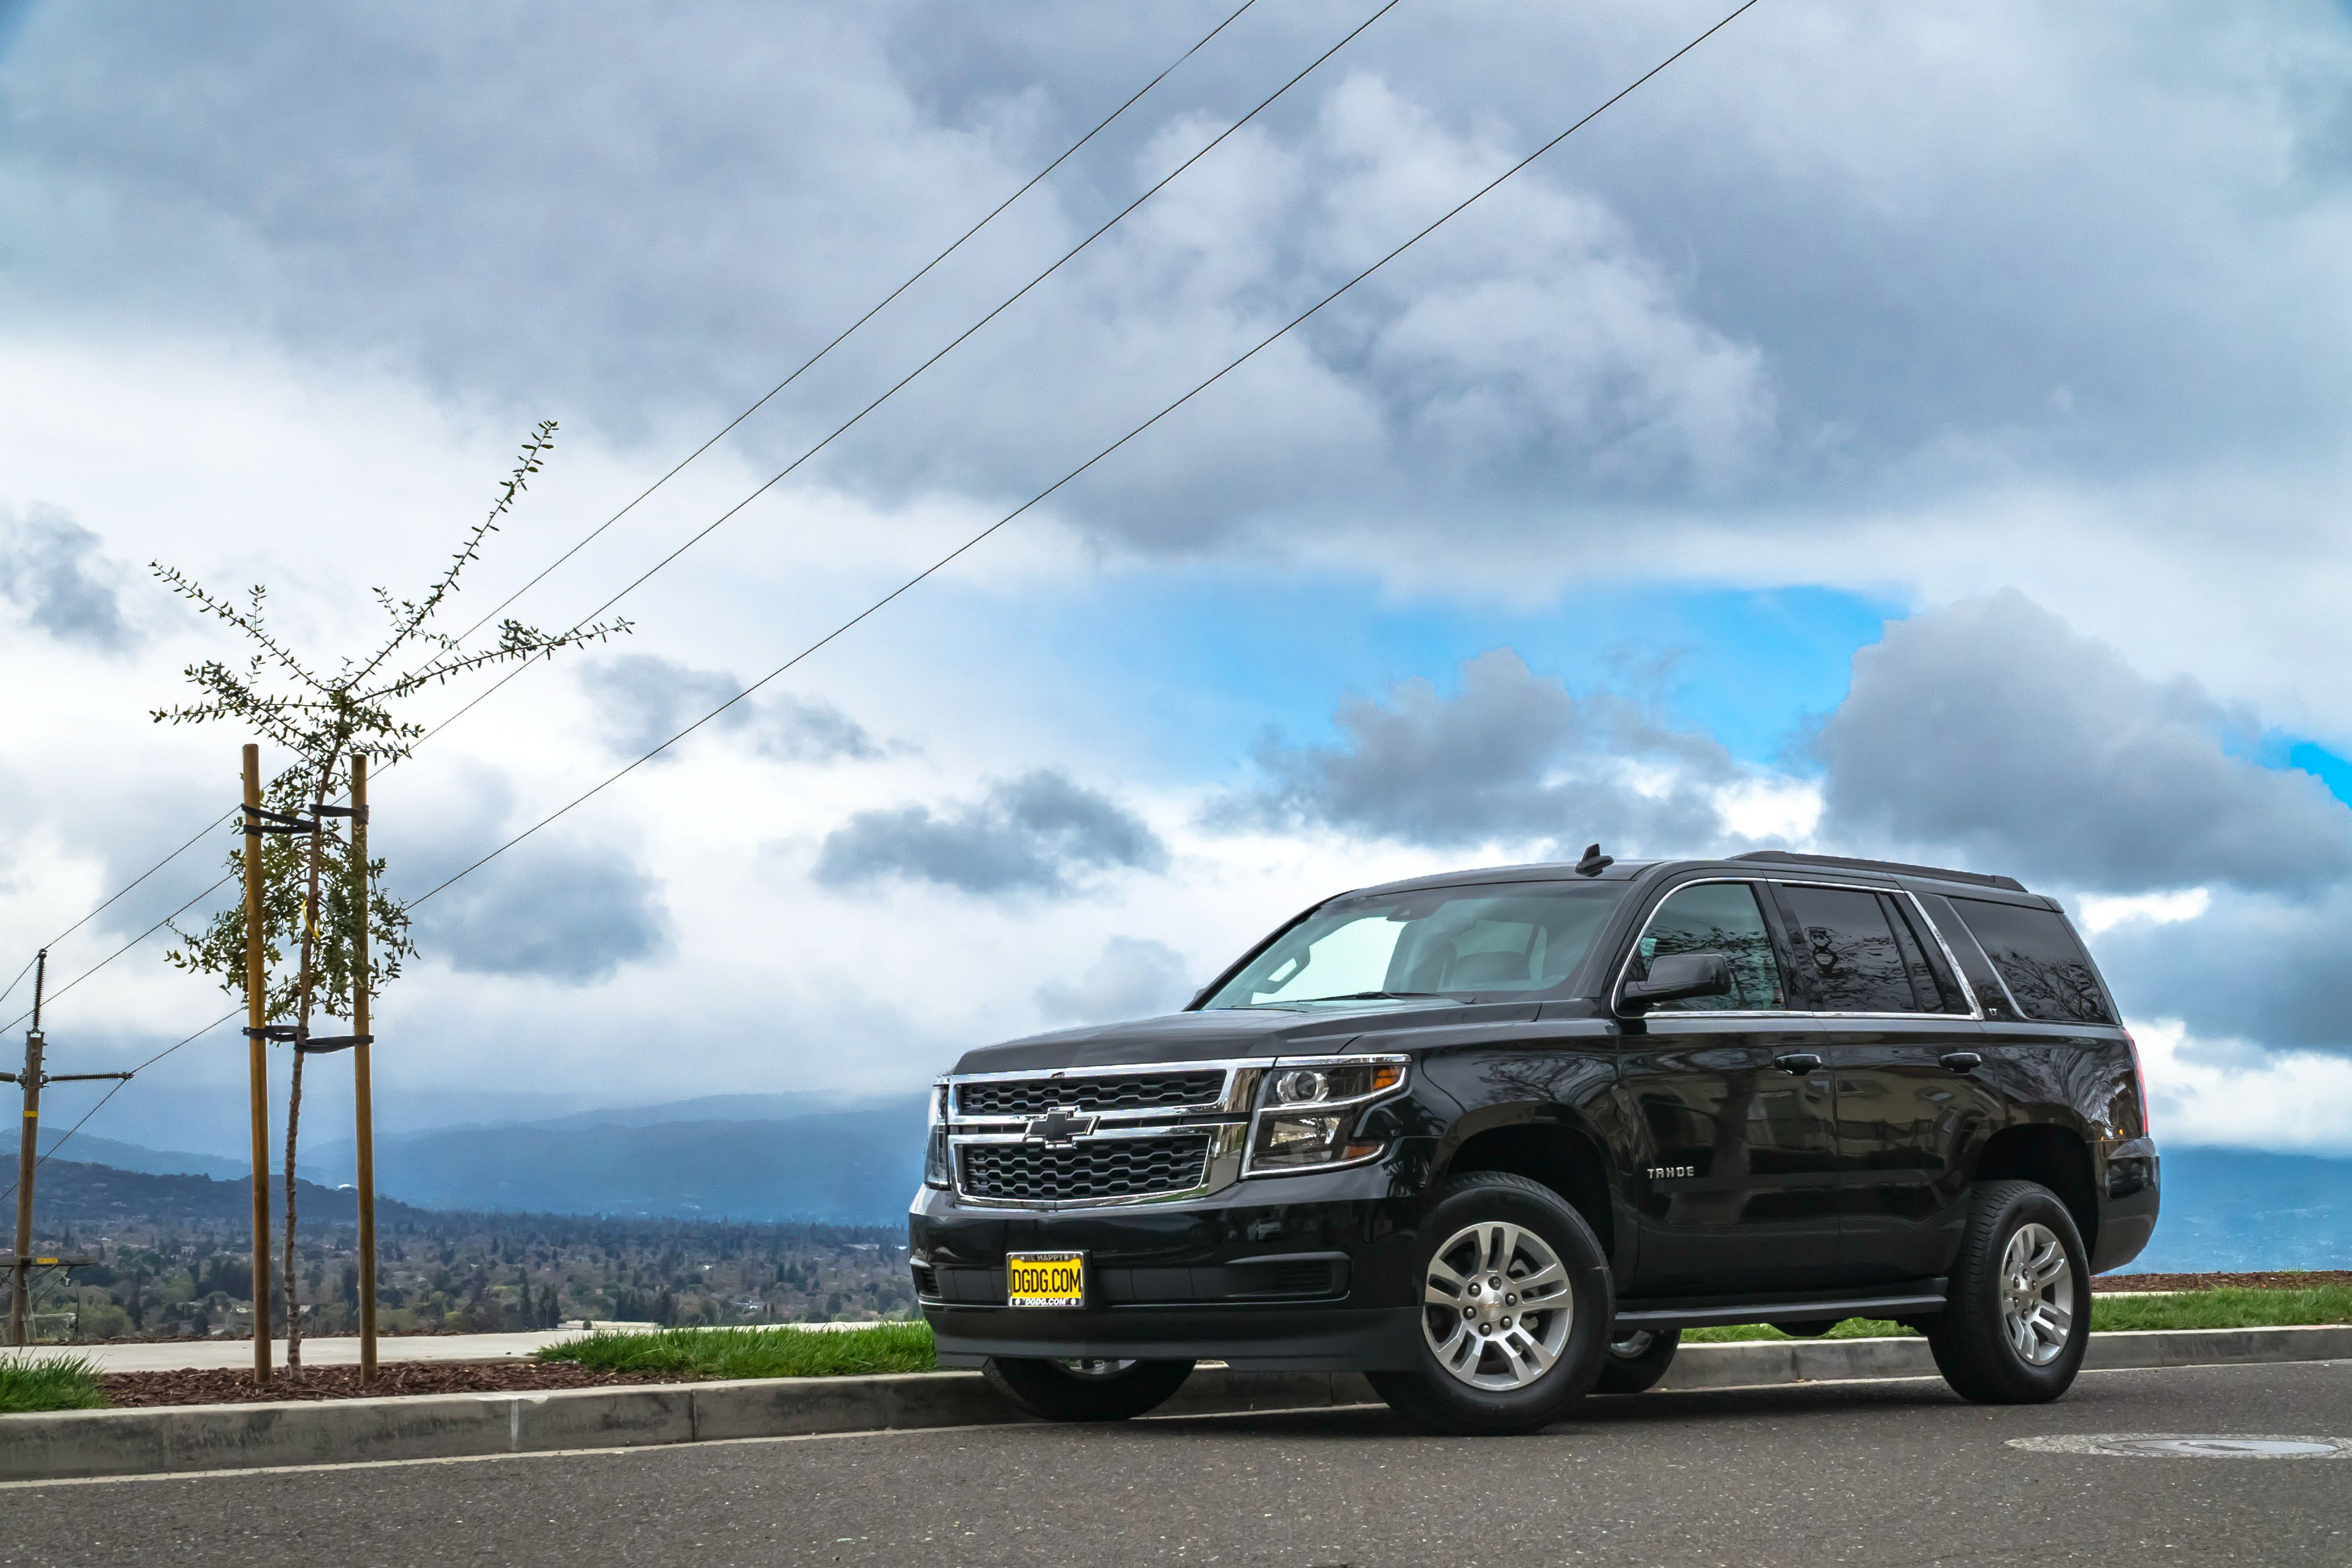 Chevy Tahoe Chevy Dealers Chevrolet Dealership Chevy Tahoe